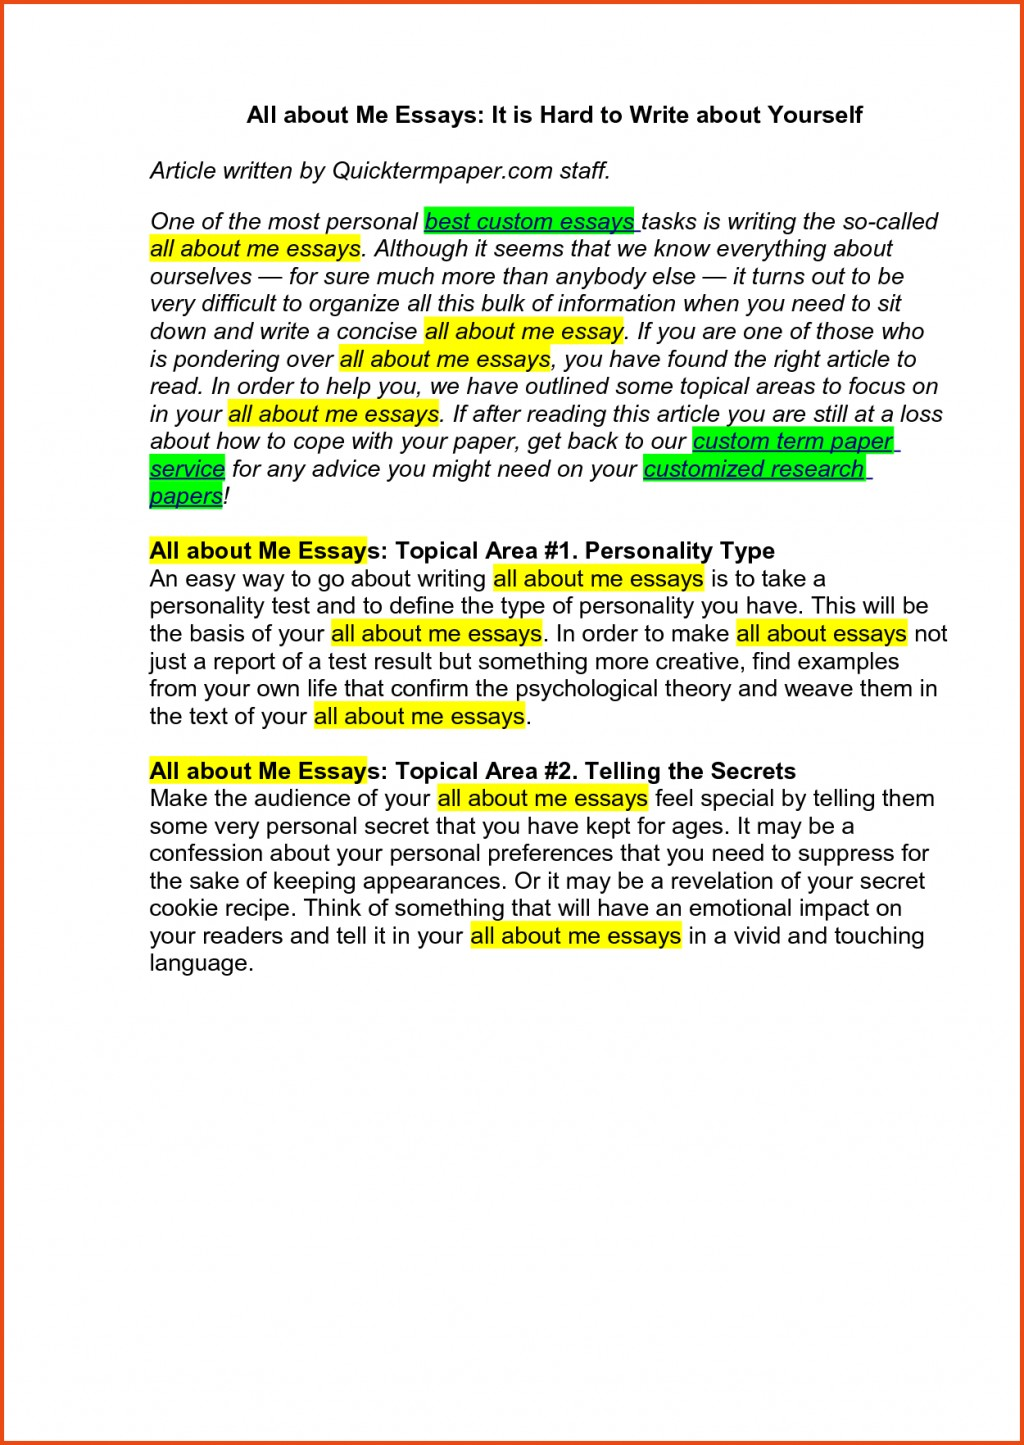 010 Essay Example Personal About Yourself Examples Sample Collegesions Good Mba Essays School Application For Confortable Resume In Formidable Pdf Large